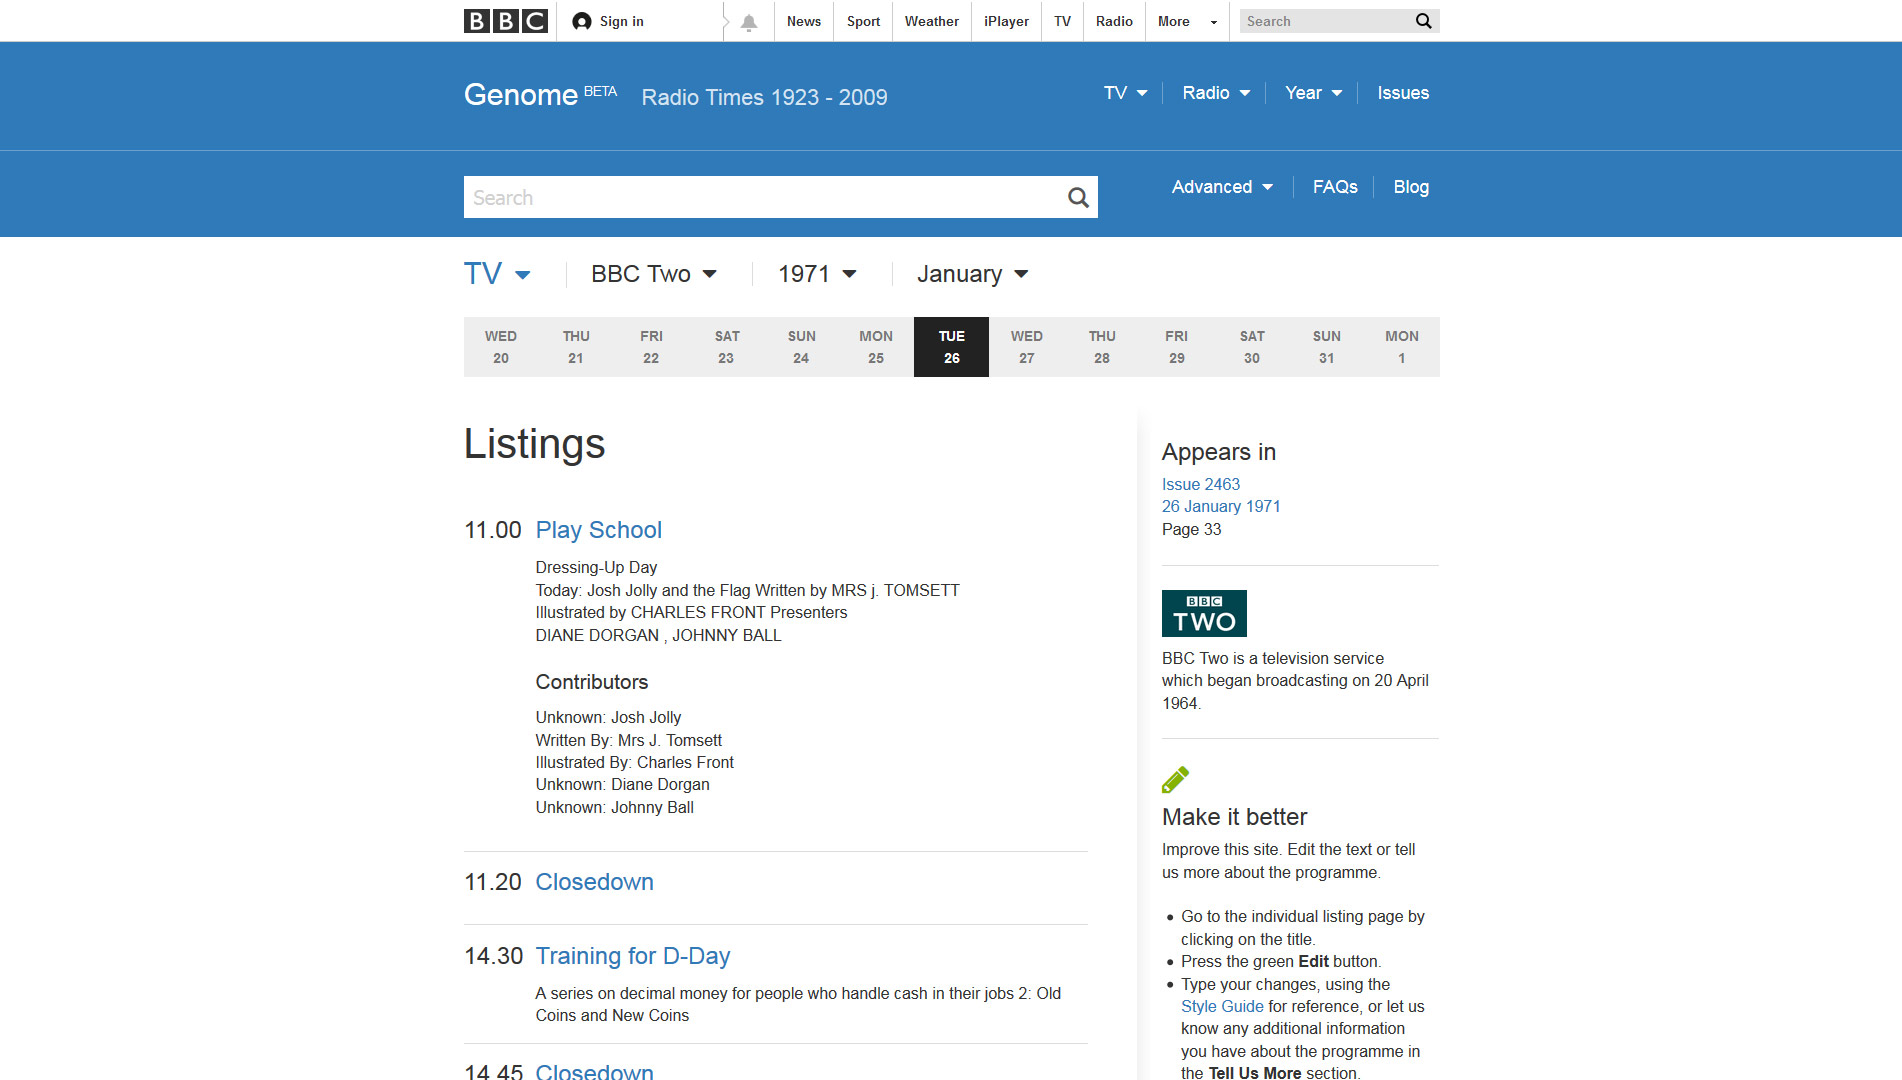 BBC Genome listings